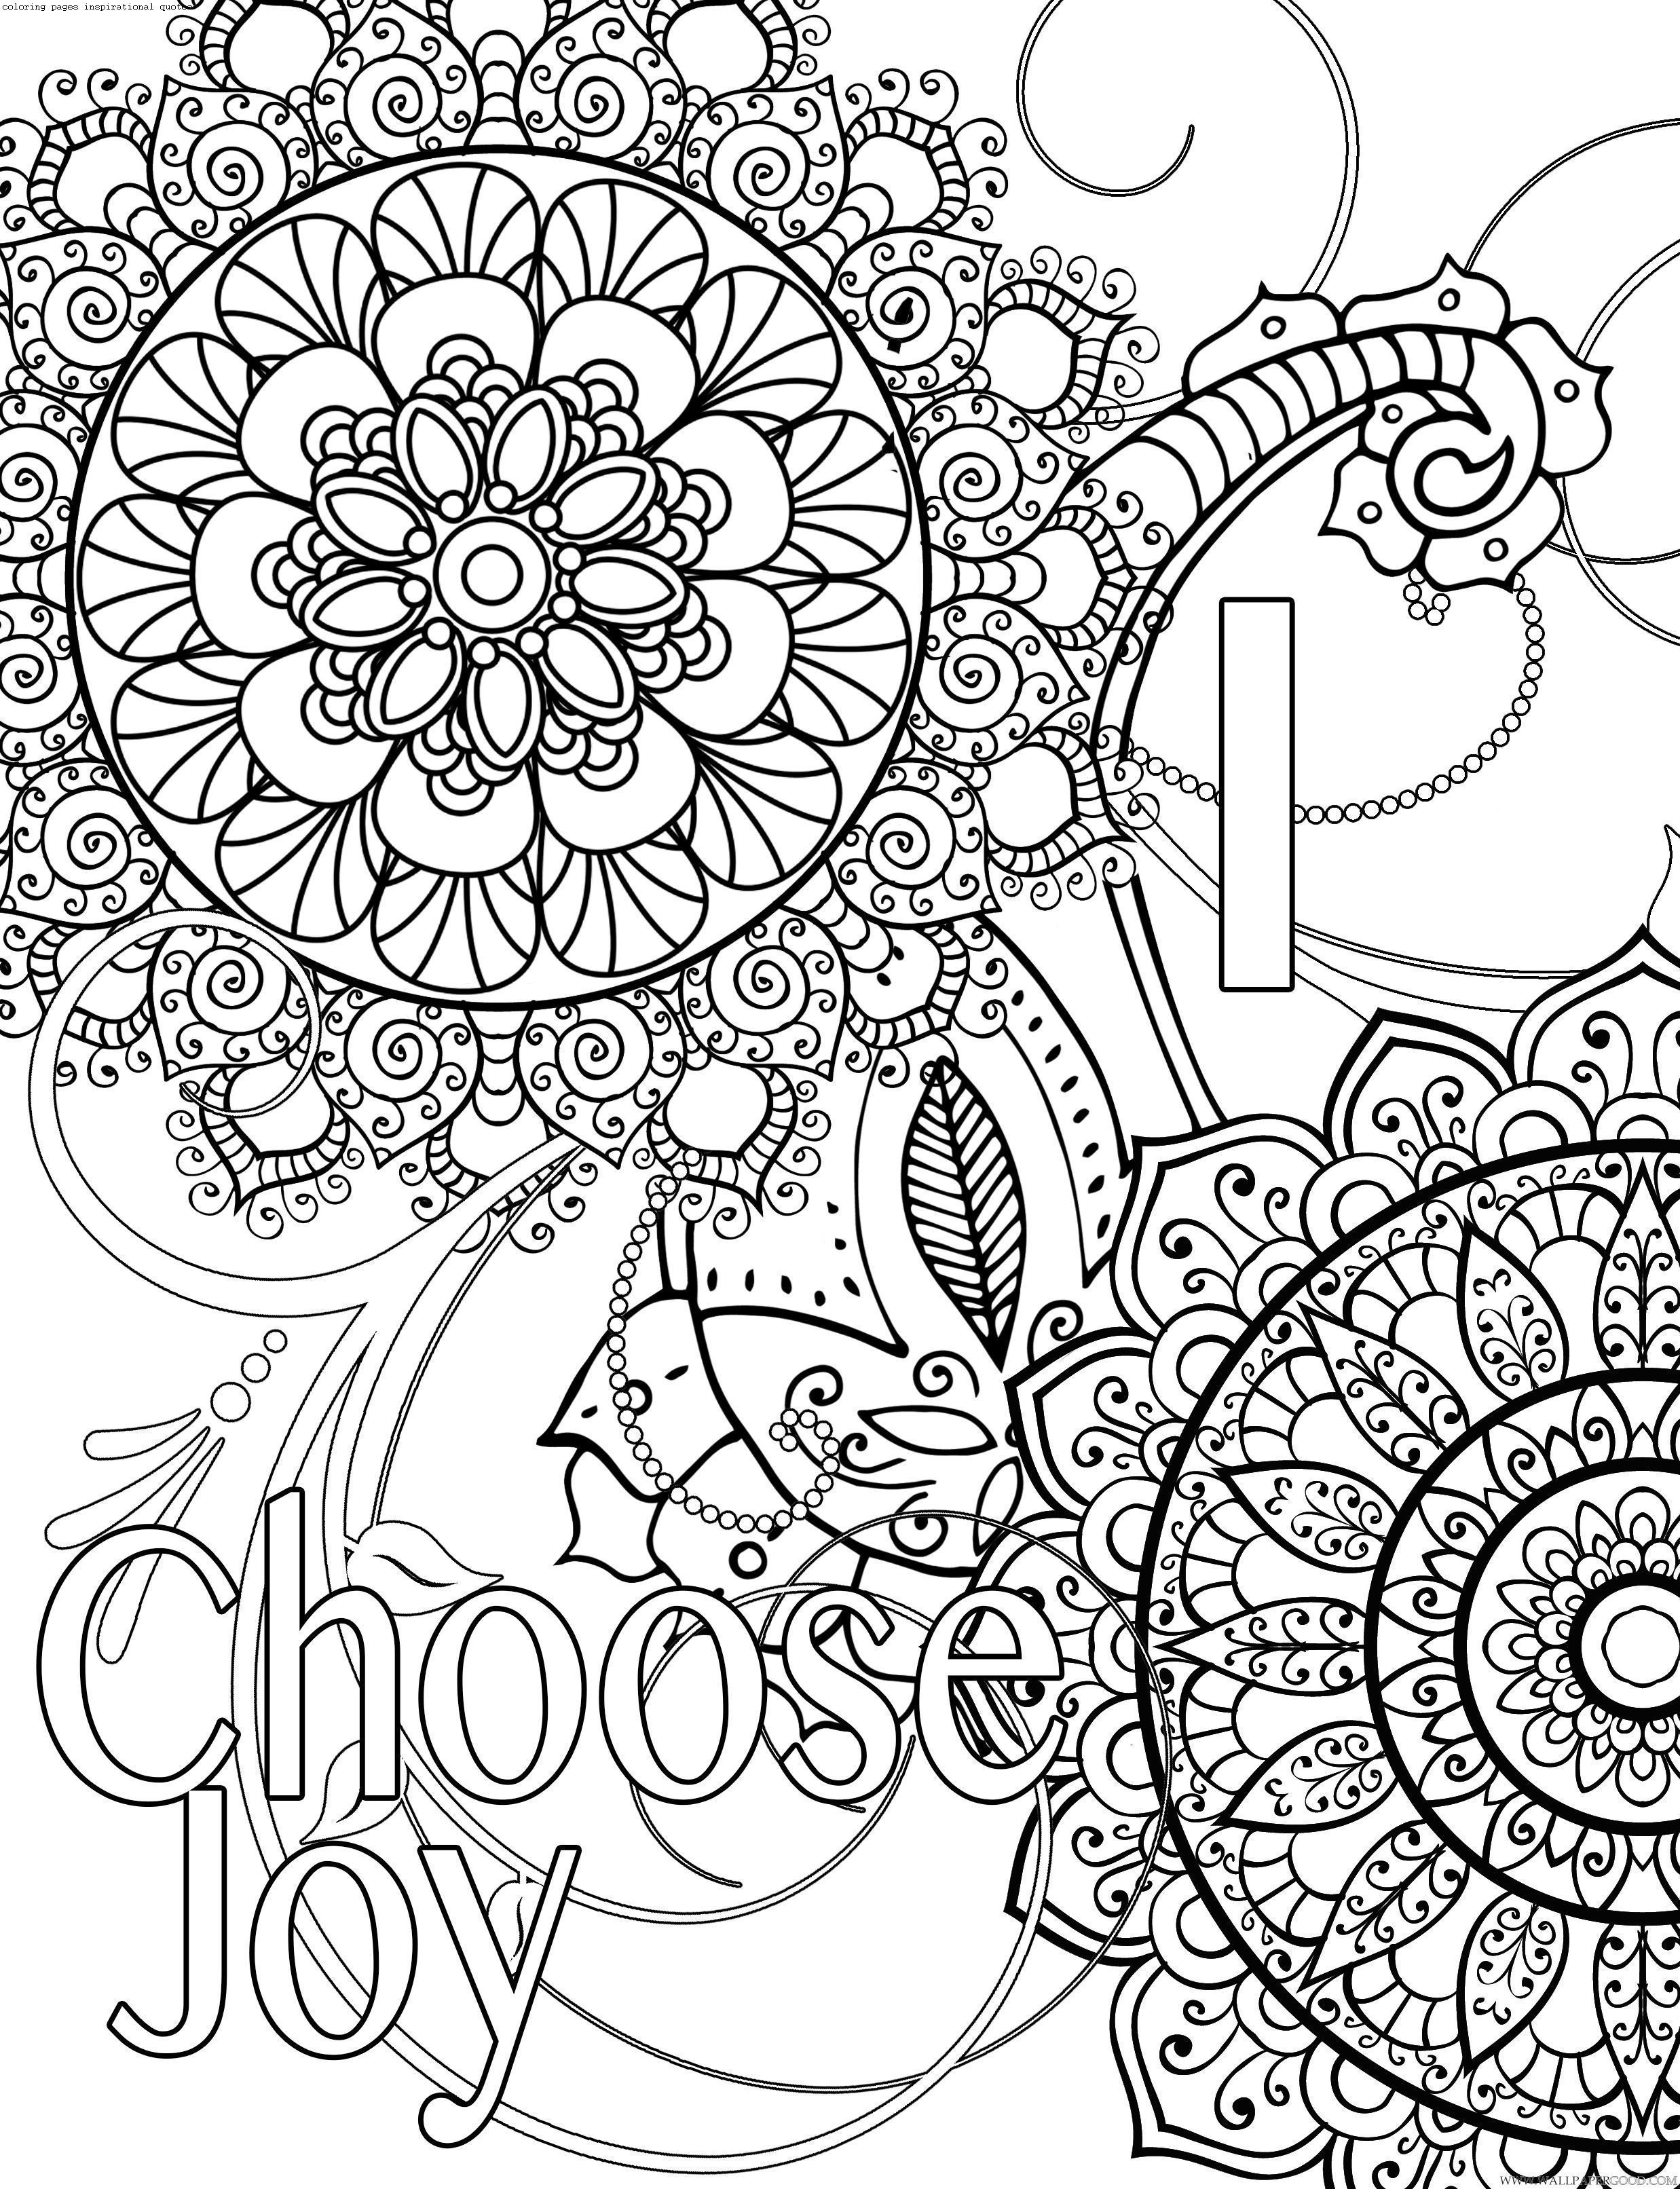 Free Printable Coloring Pages Inspirational Quotes  Coloring